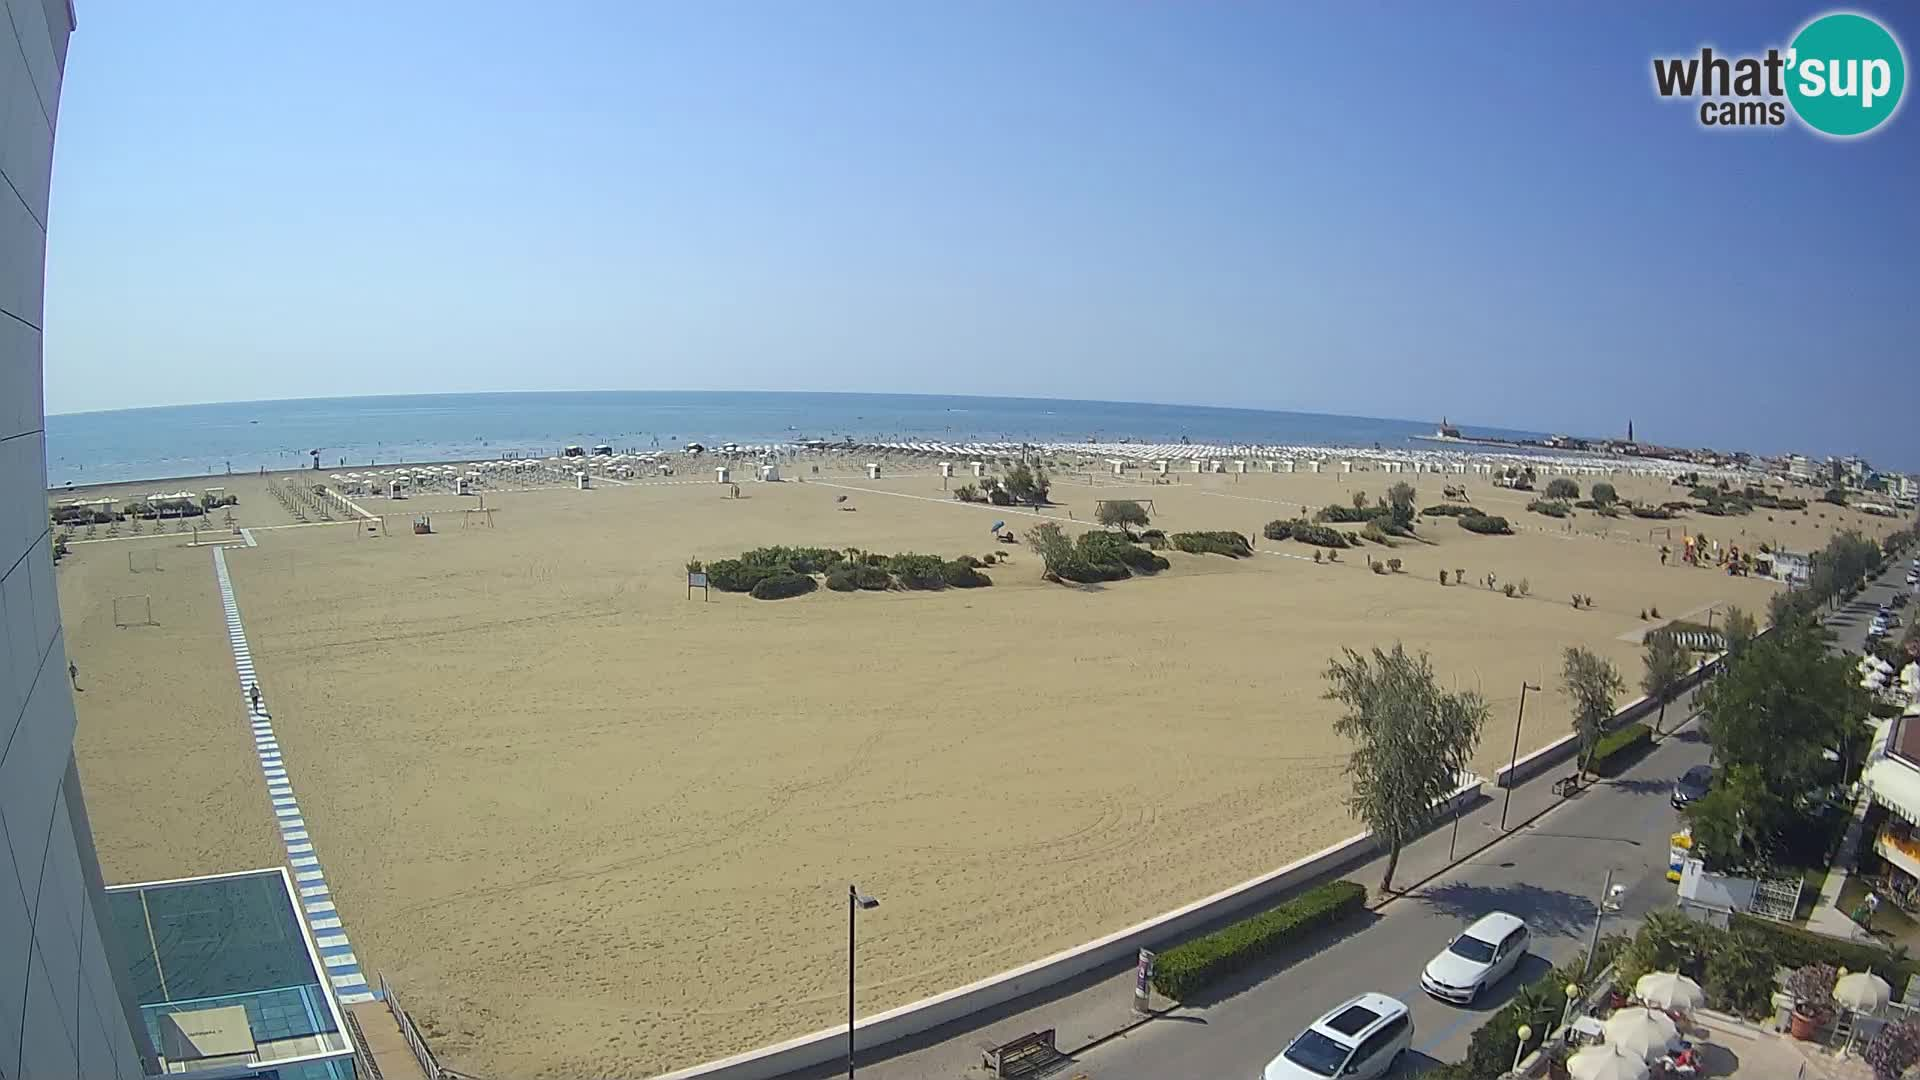 Hotel Panoramic Live view Caorle beach Levante webcam – Italy